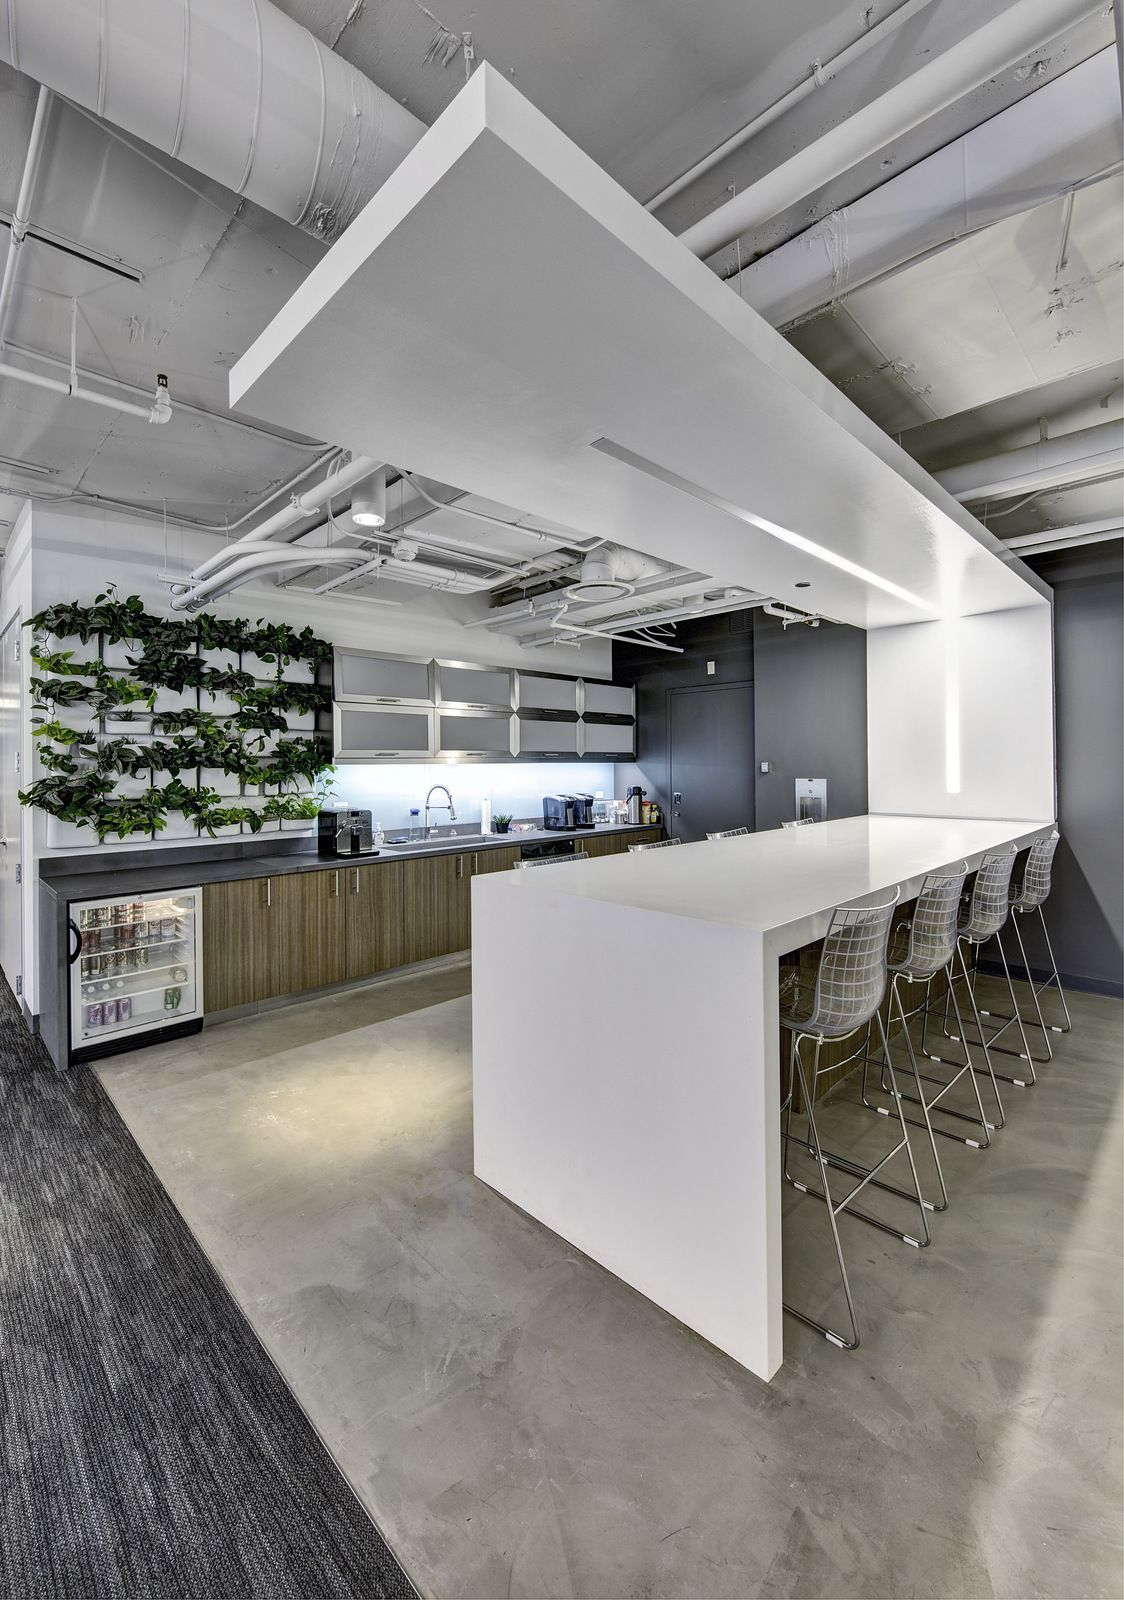 Home Design Business Ideas: Office Tour: Ignite – Chicago Offices